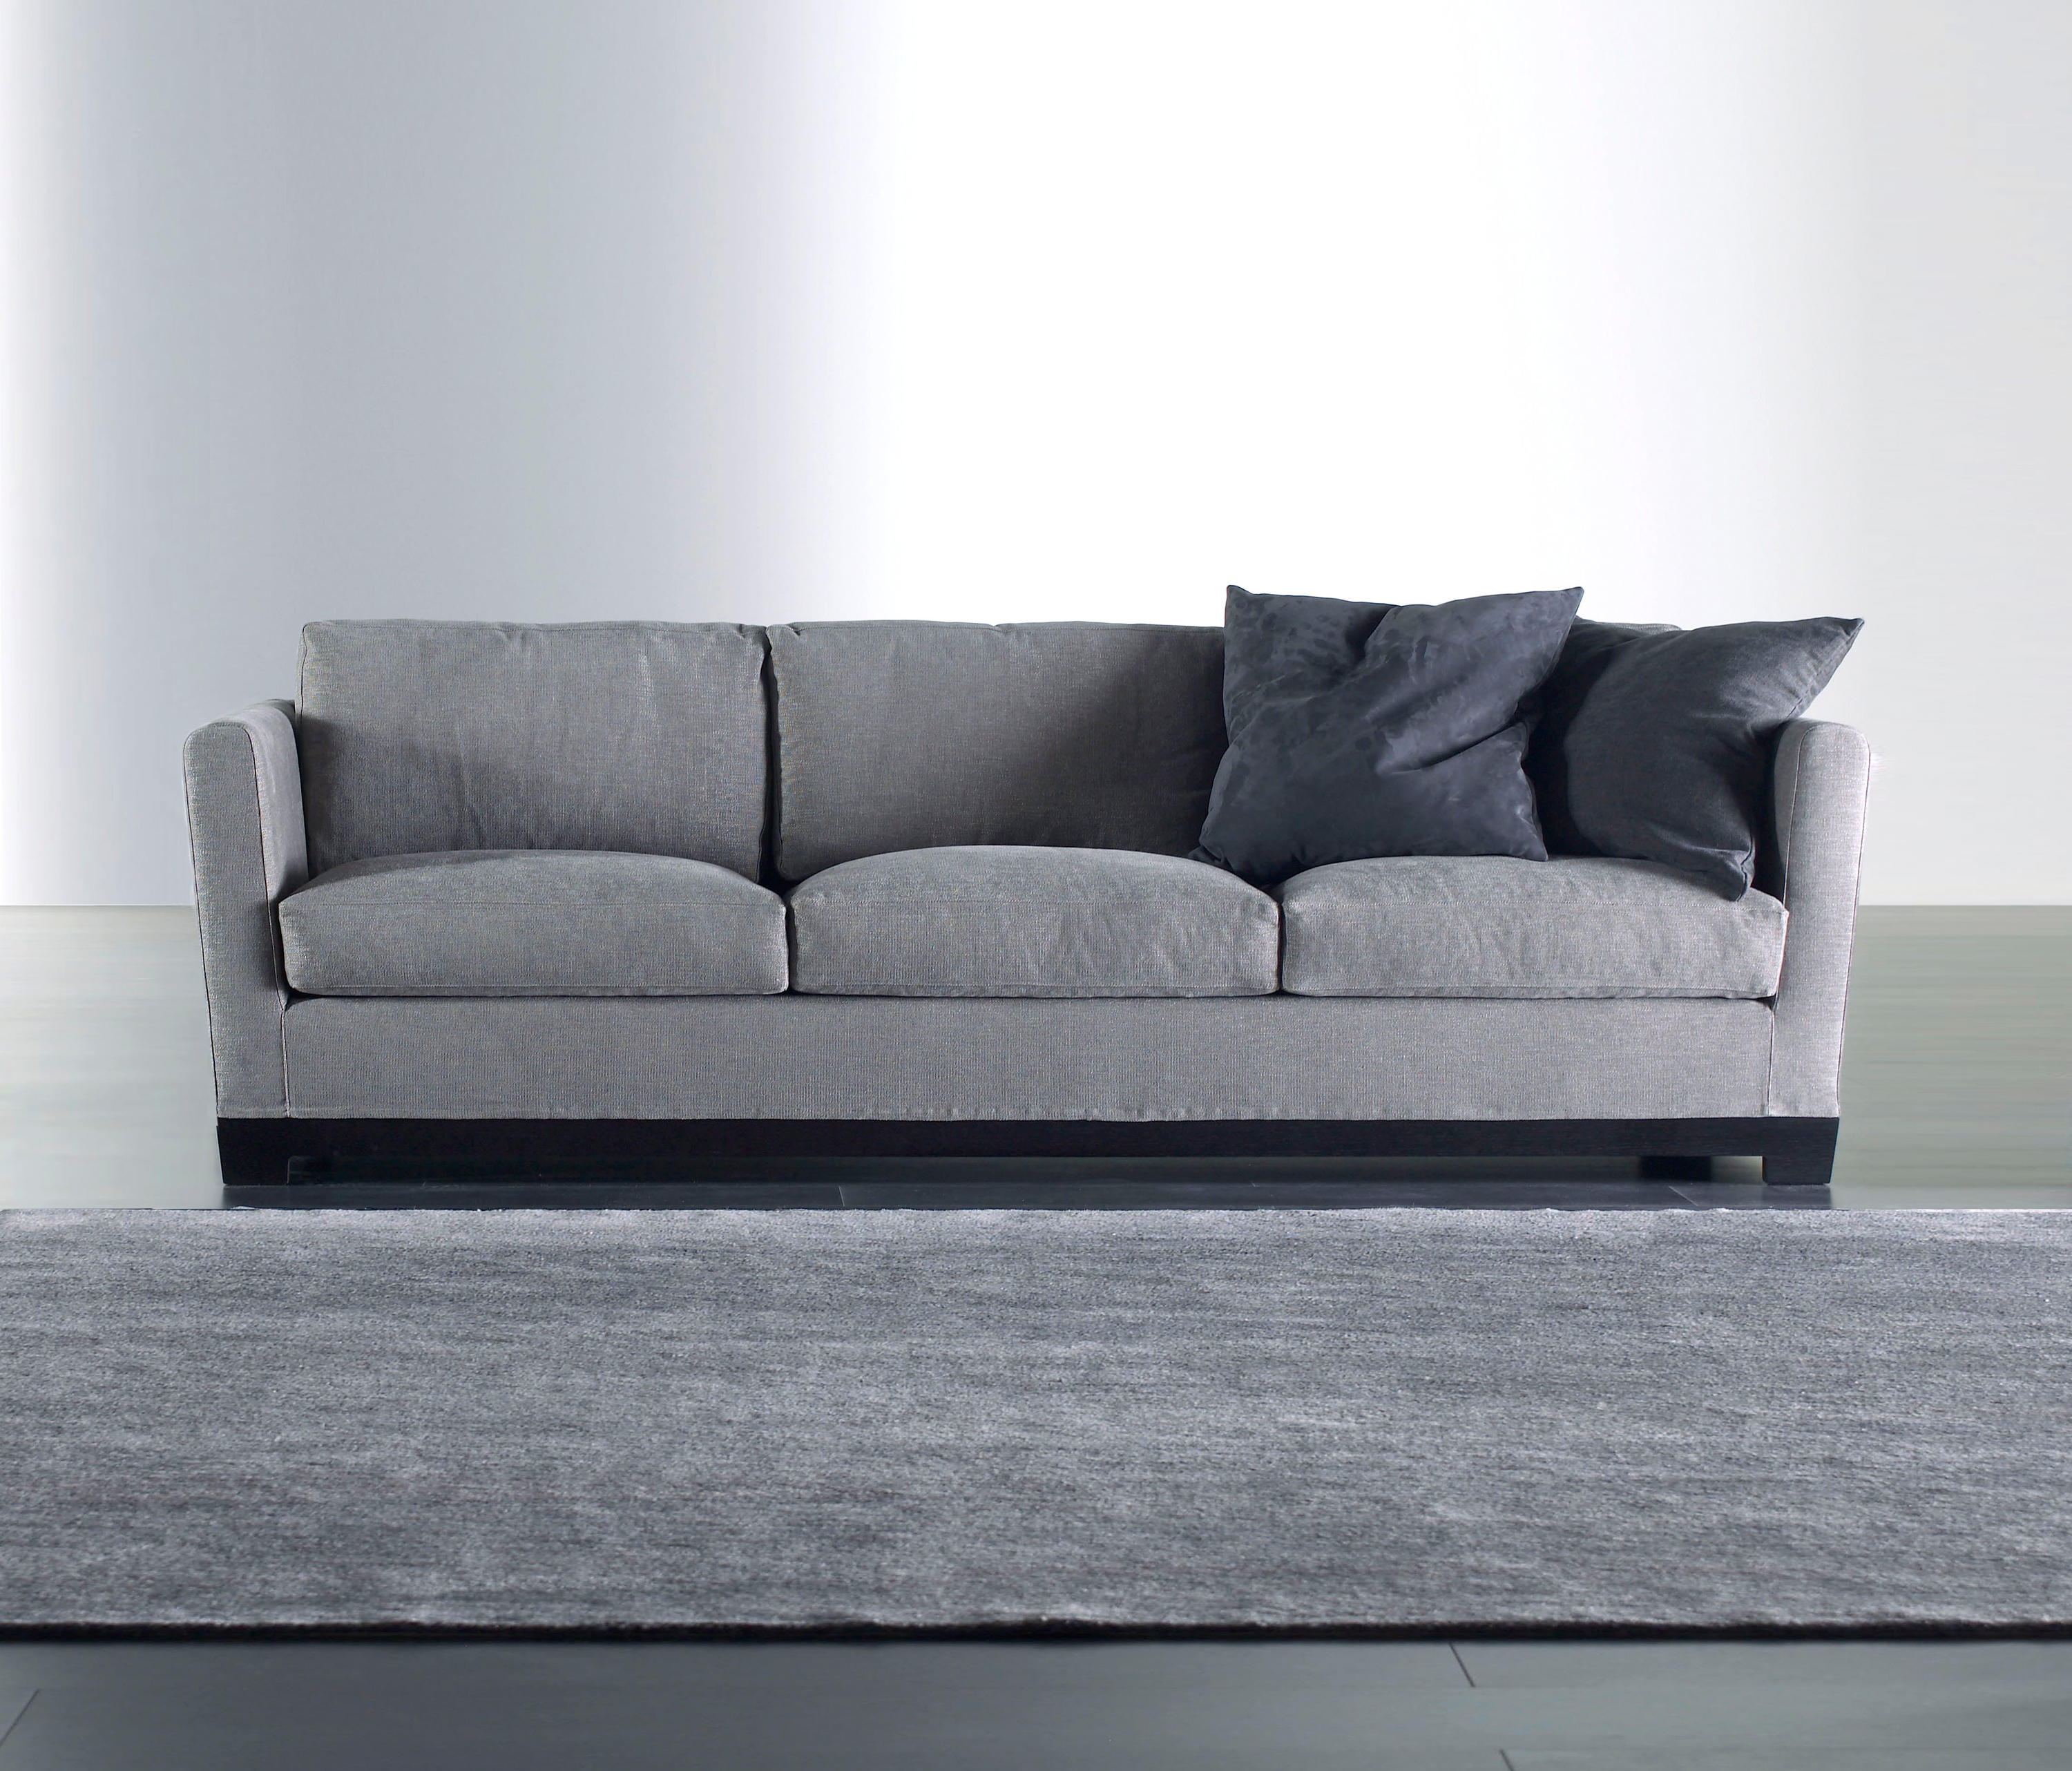 pratts corner sofas sofa bed clearance london allen and loveseats leather couch ethan